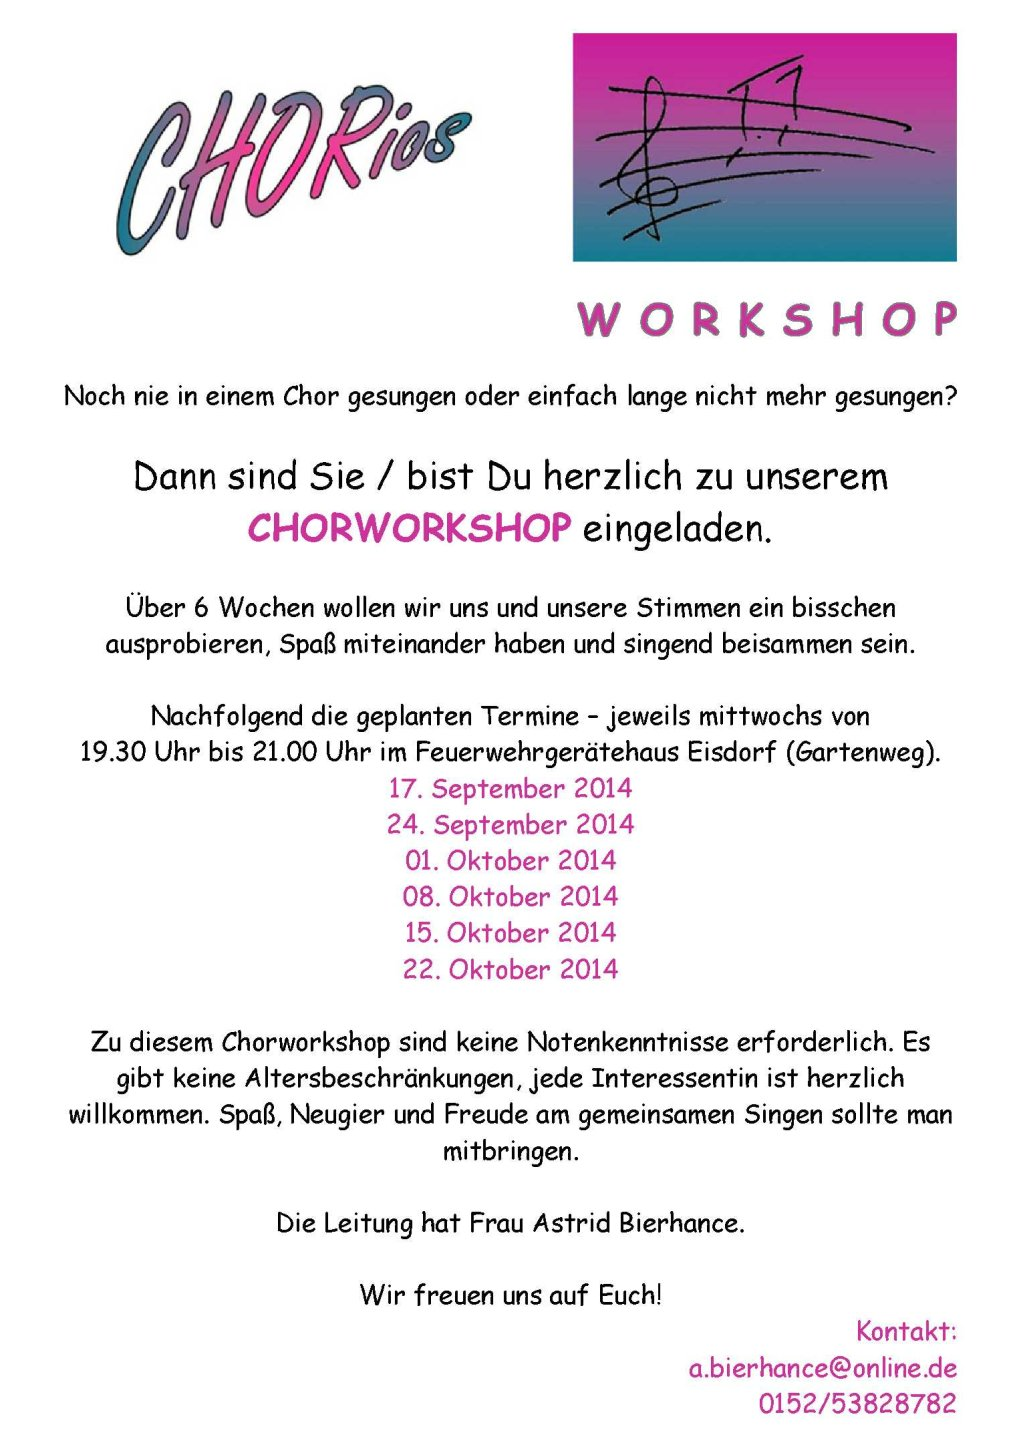 Chorios Chorworkshop